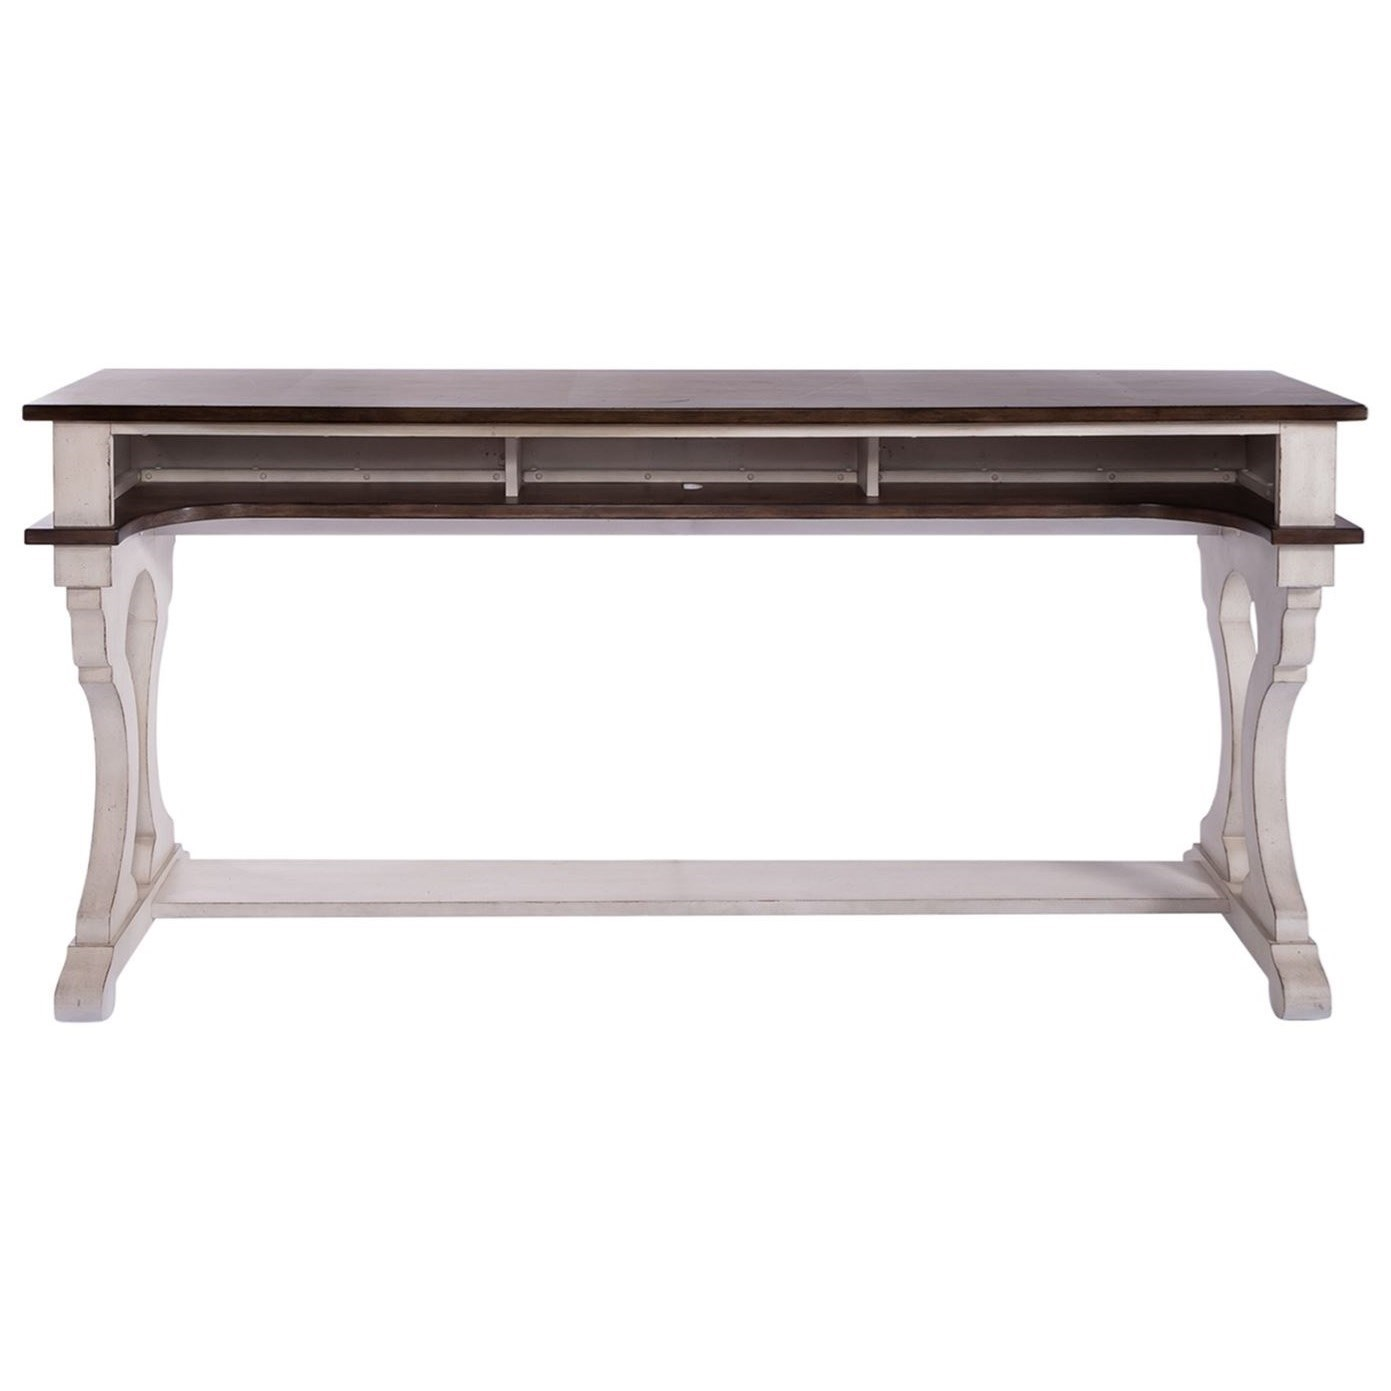 Counter Height Console Bar Table with 2 Outlets and USB Charging